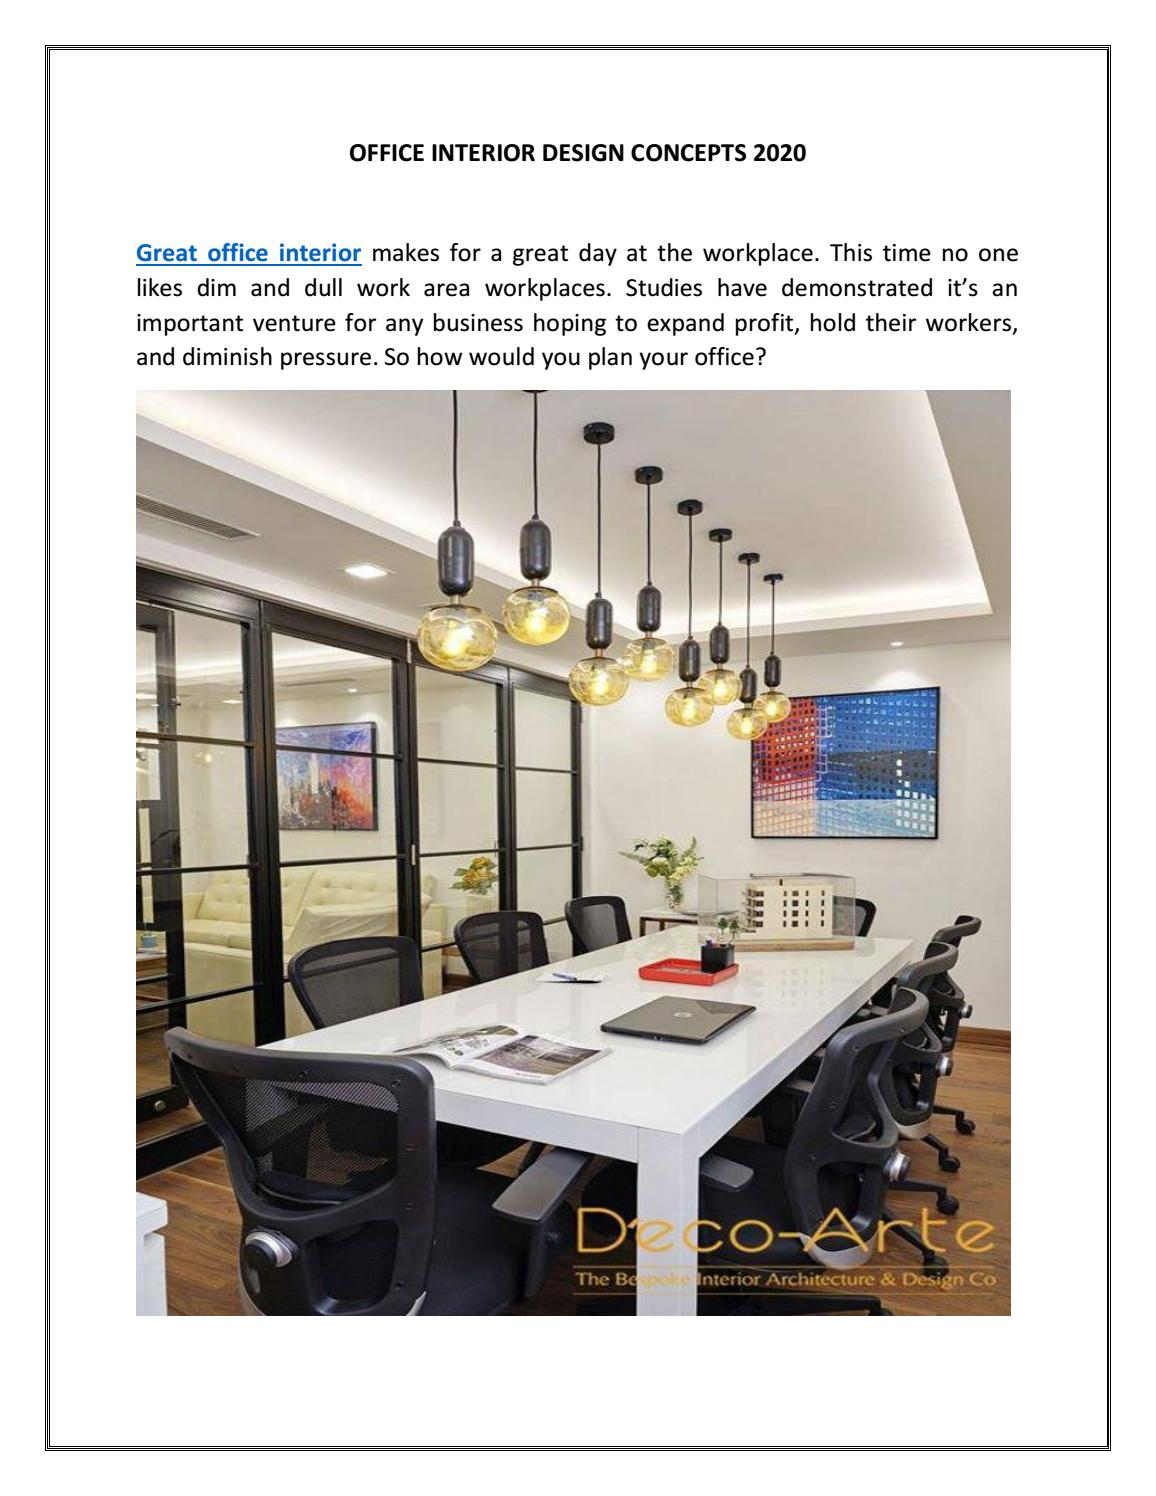 Office Interior Design Concepts 2020 By Decoarte Issuu